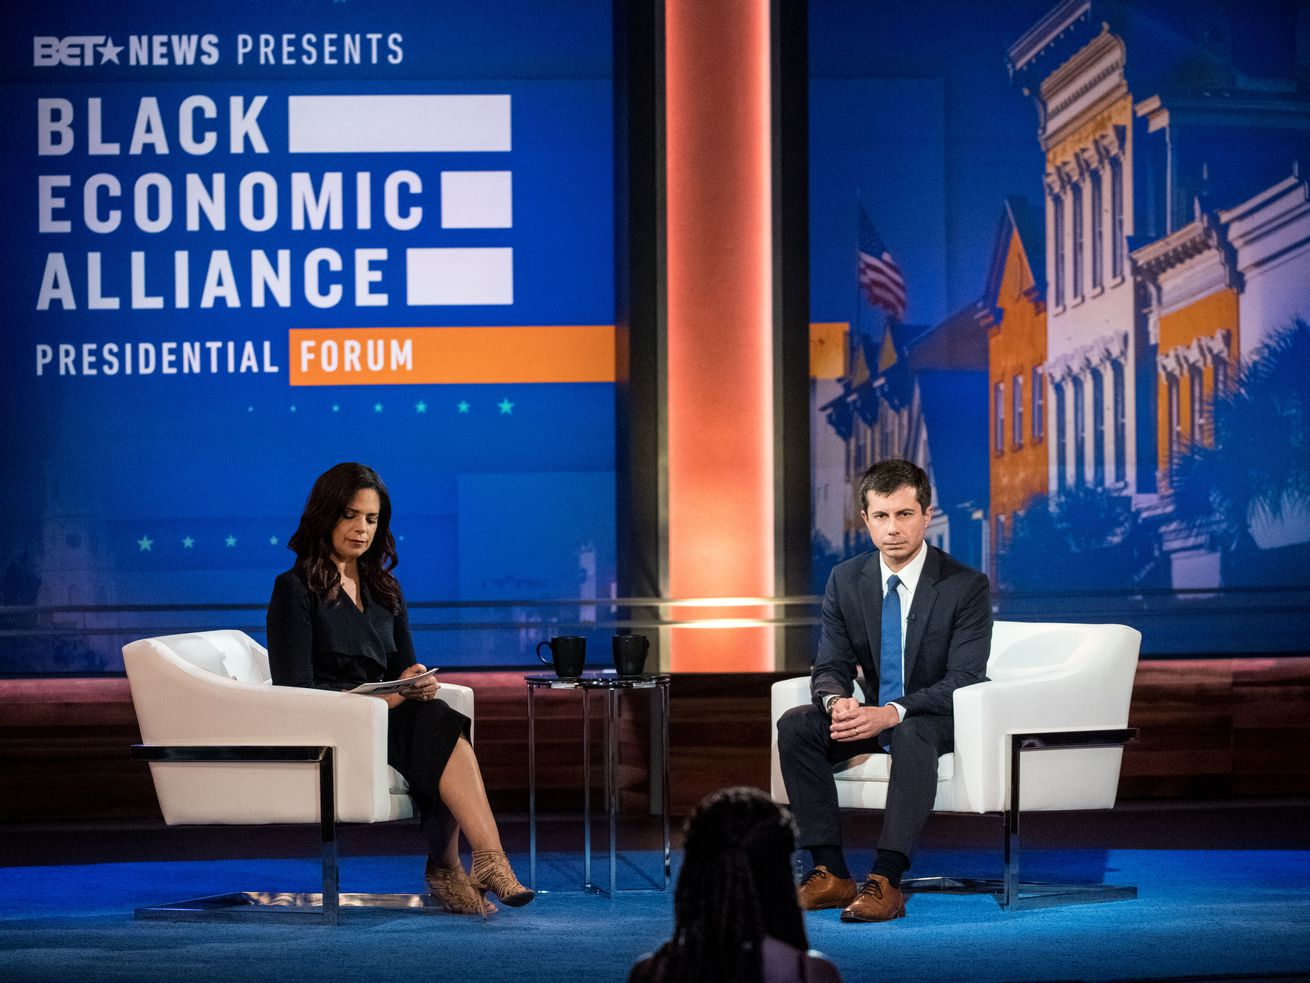 Black voters want 2020 candidates to talk about the economy. At the Black Economic Alliance Forum, they did just that.